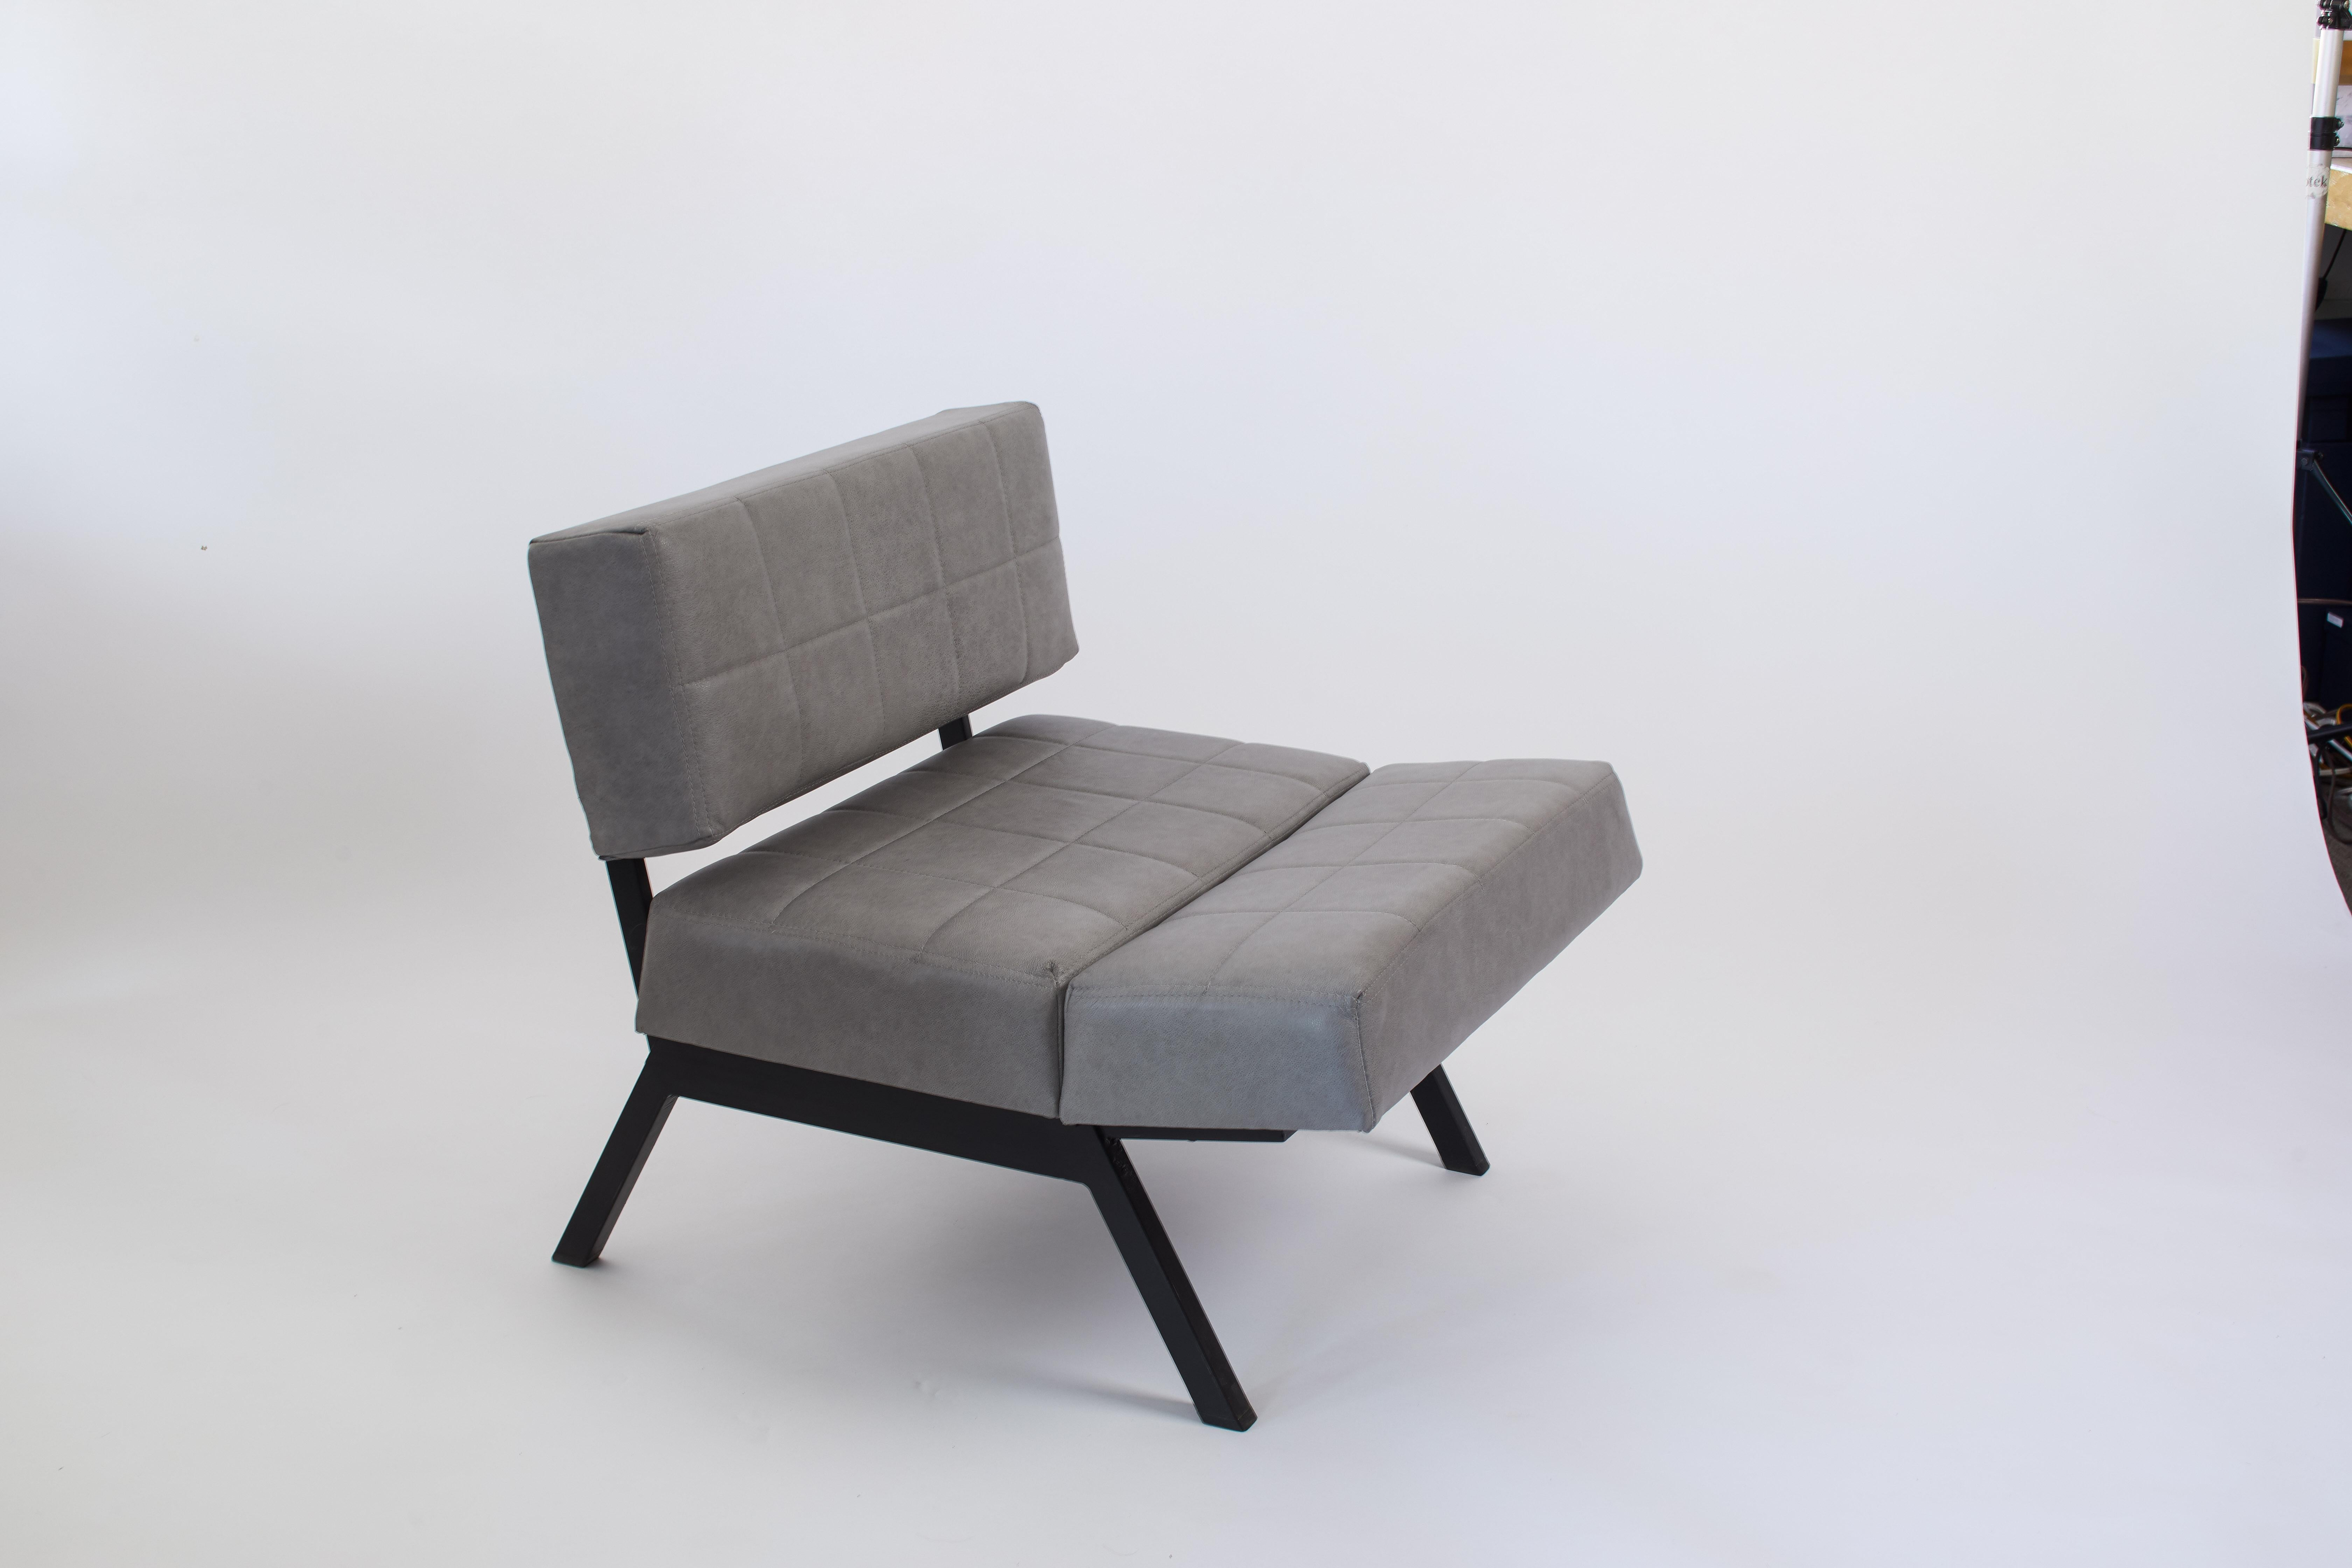 Ordinaire 1970s Italian Pair Of Chairs Convertible To Bench In Grey Leather